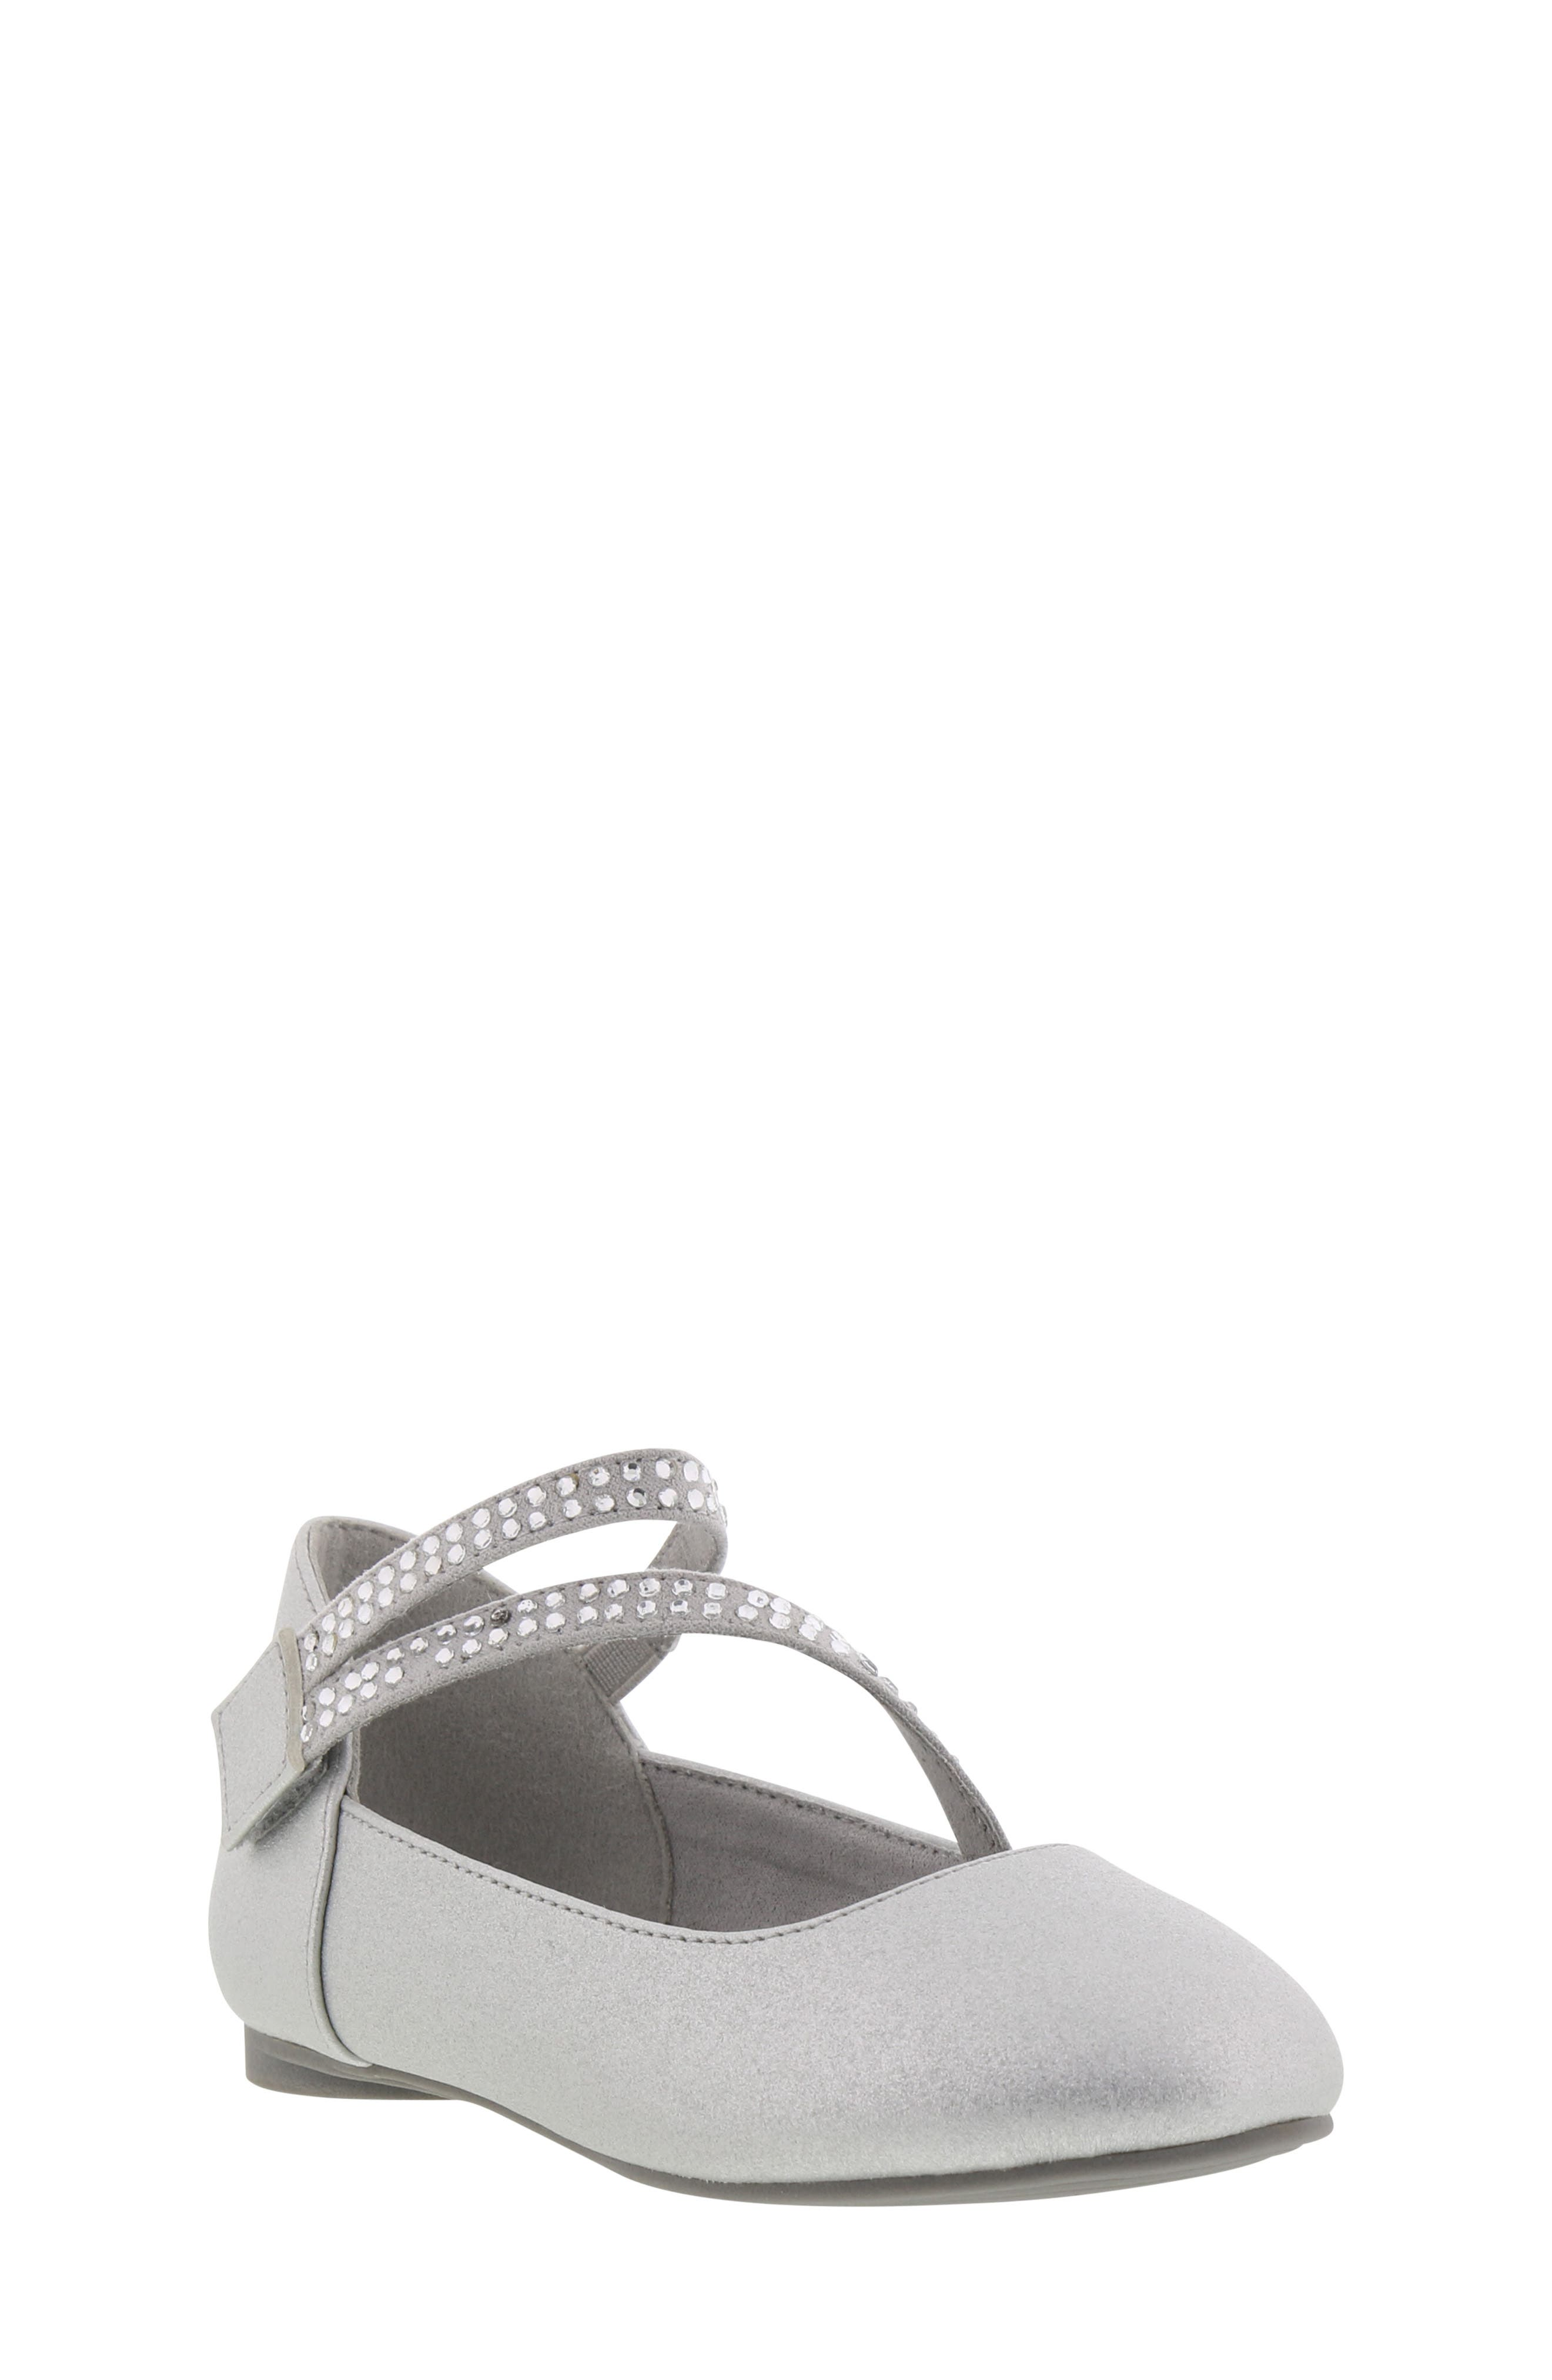 REACTION KENNETH COLE Tap Lily-T Embellished Flat, Main, color, SILVER